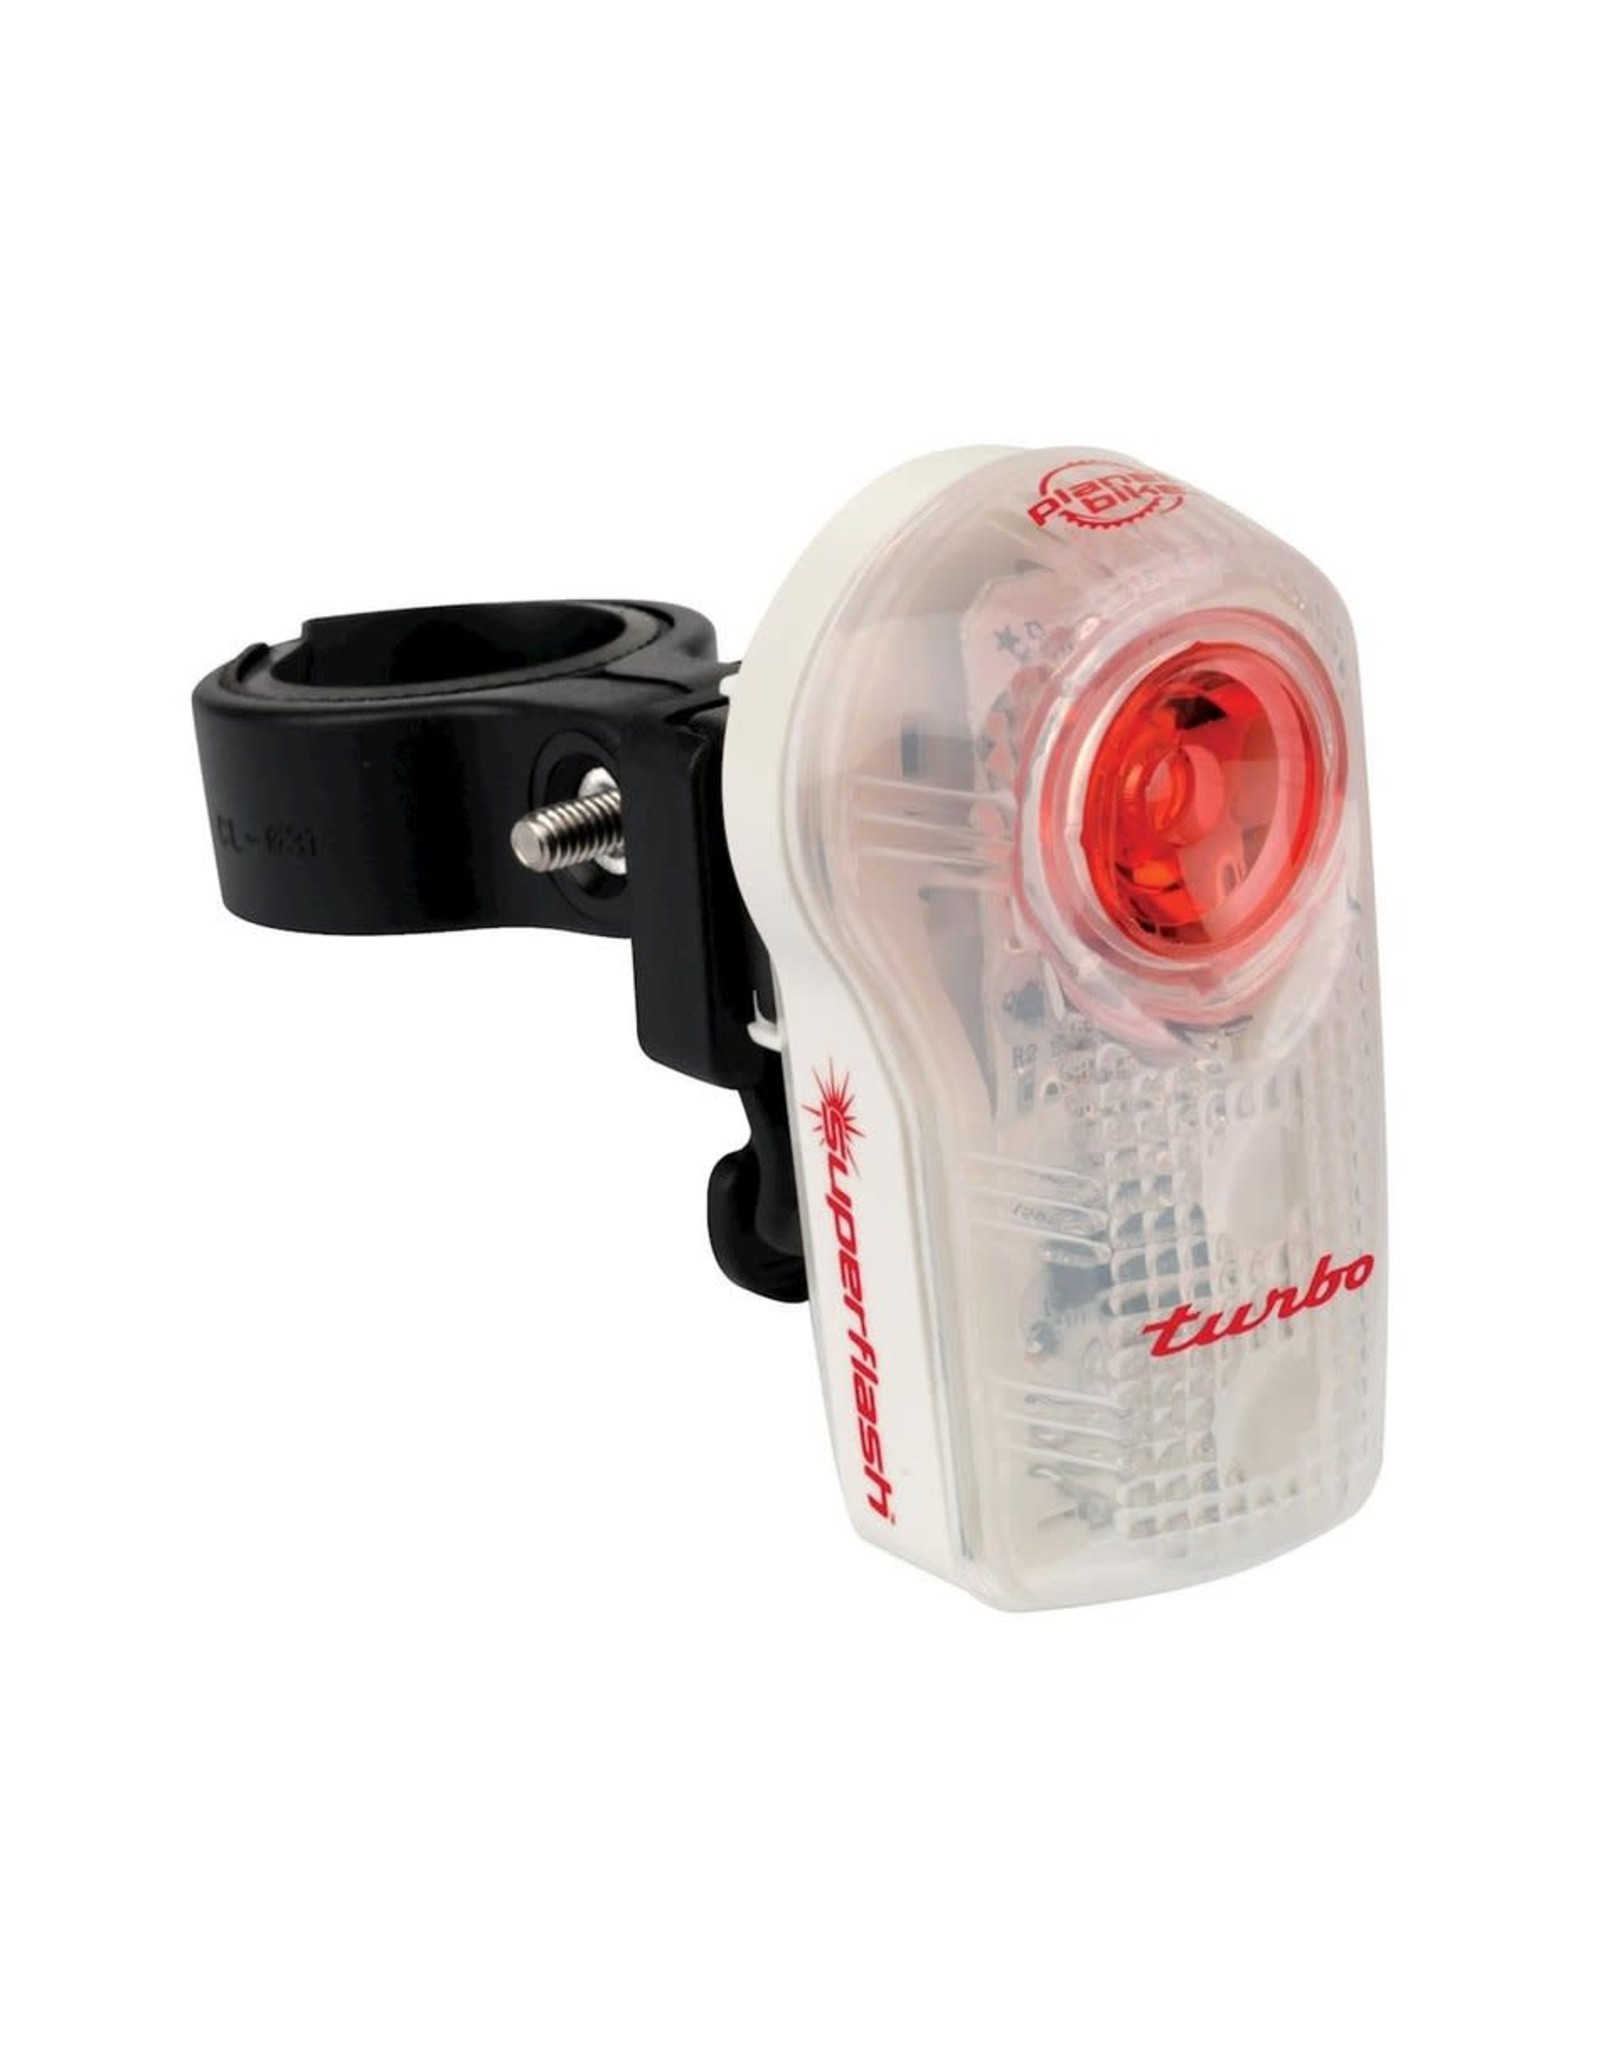 Planet Bike Super Flash Turbo 1w Bright Rear LED